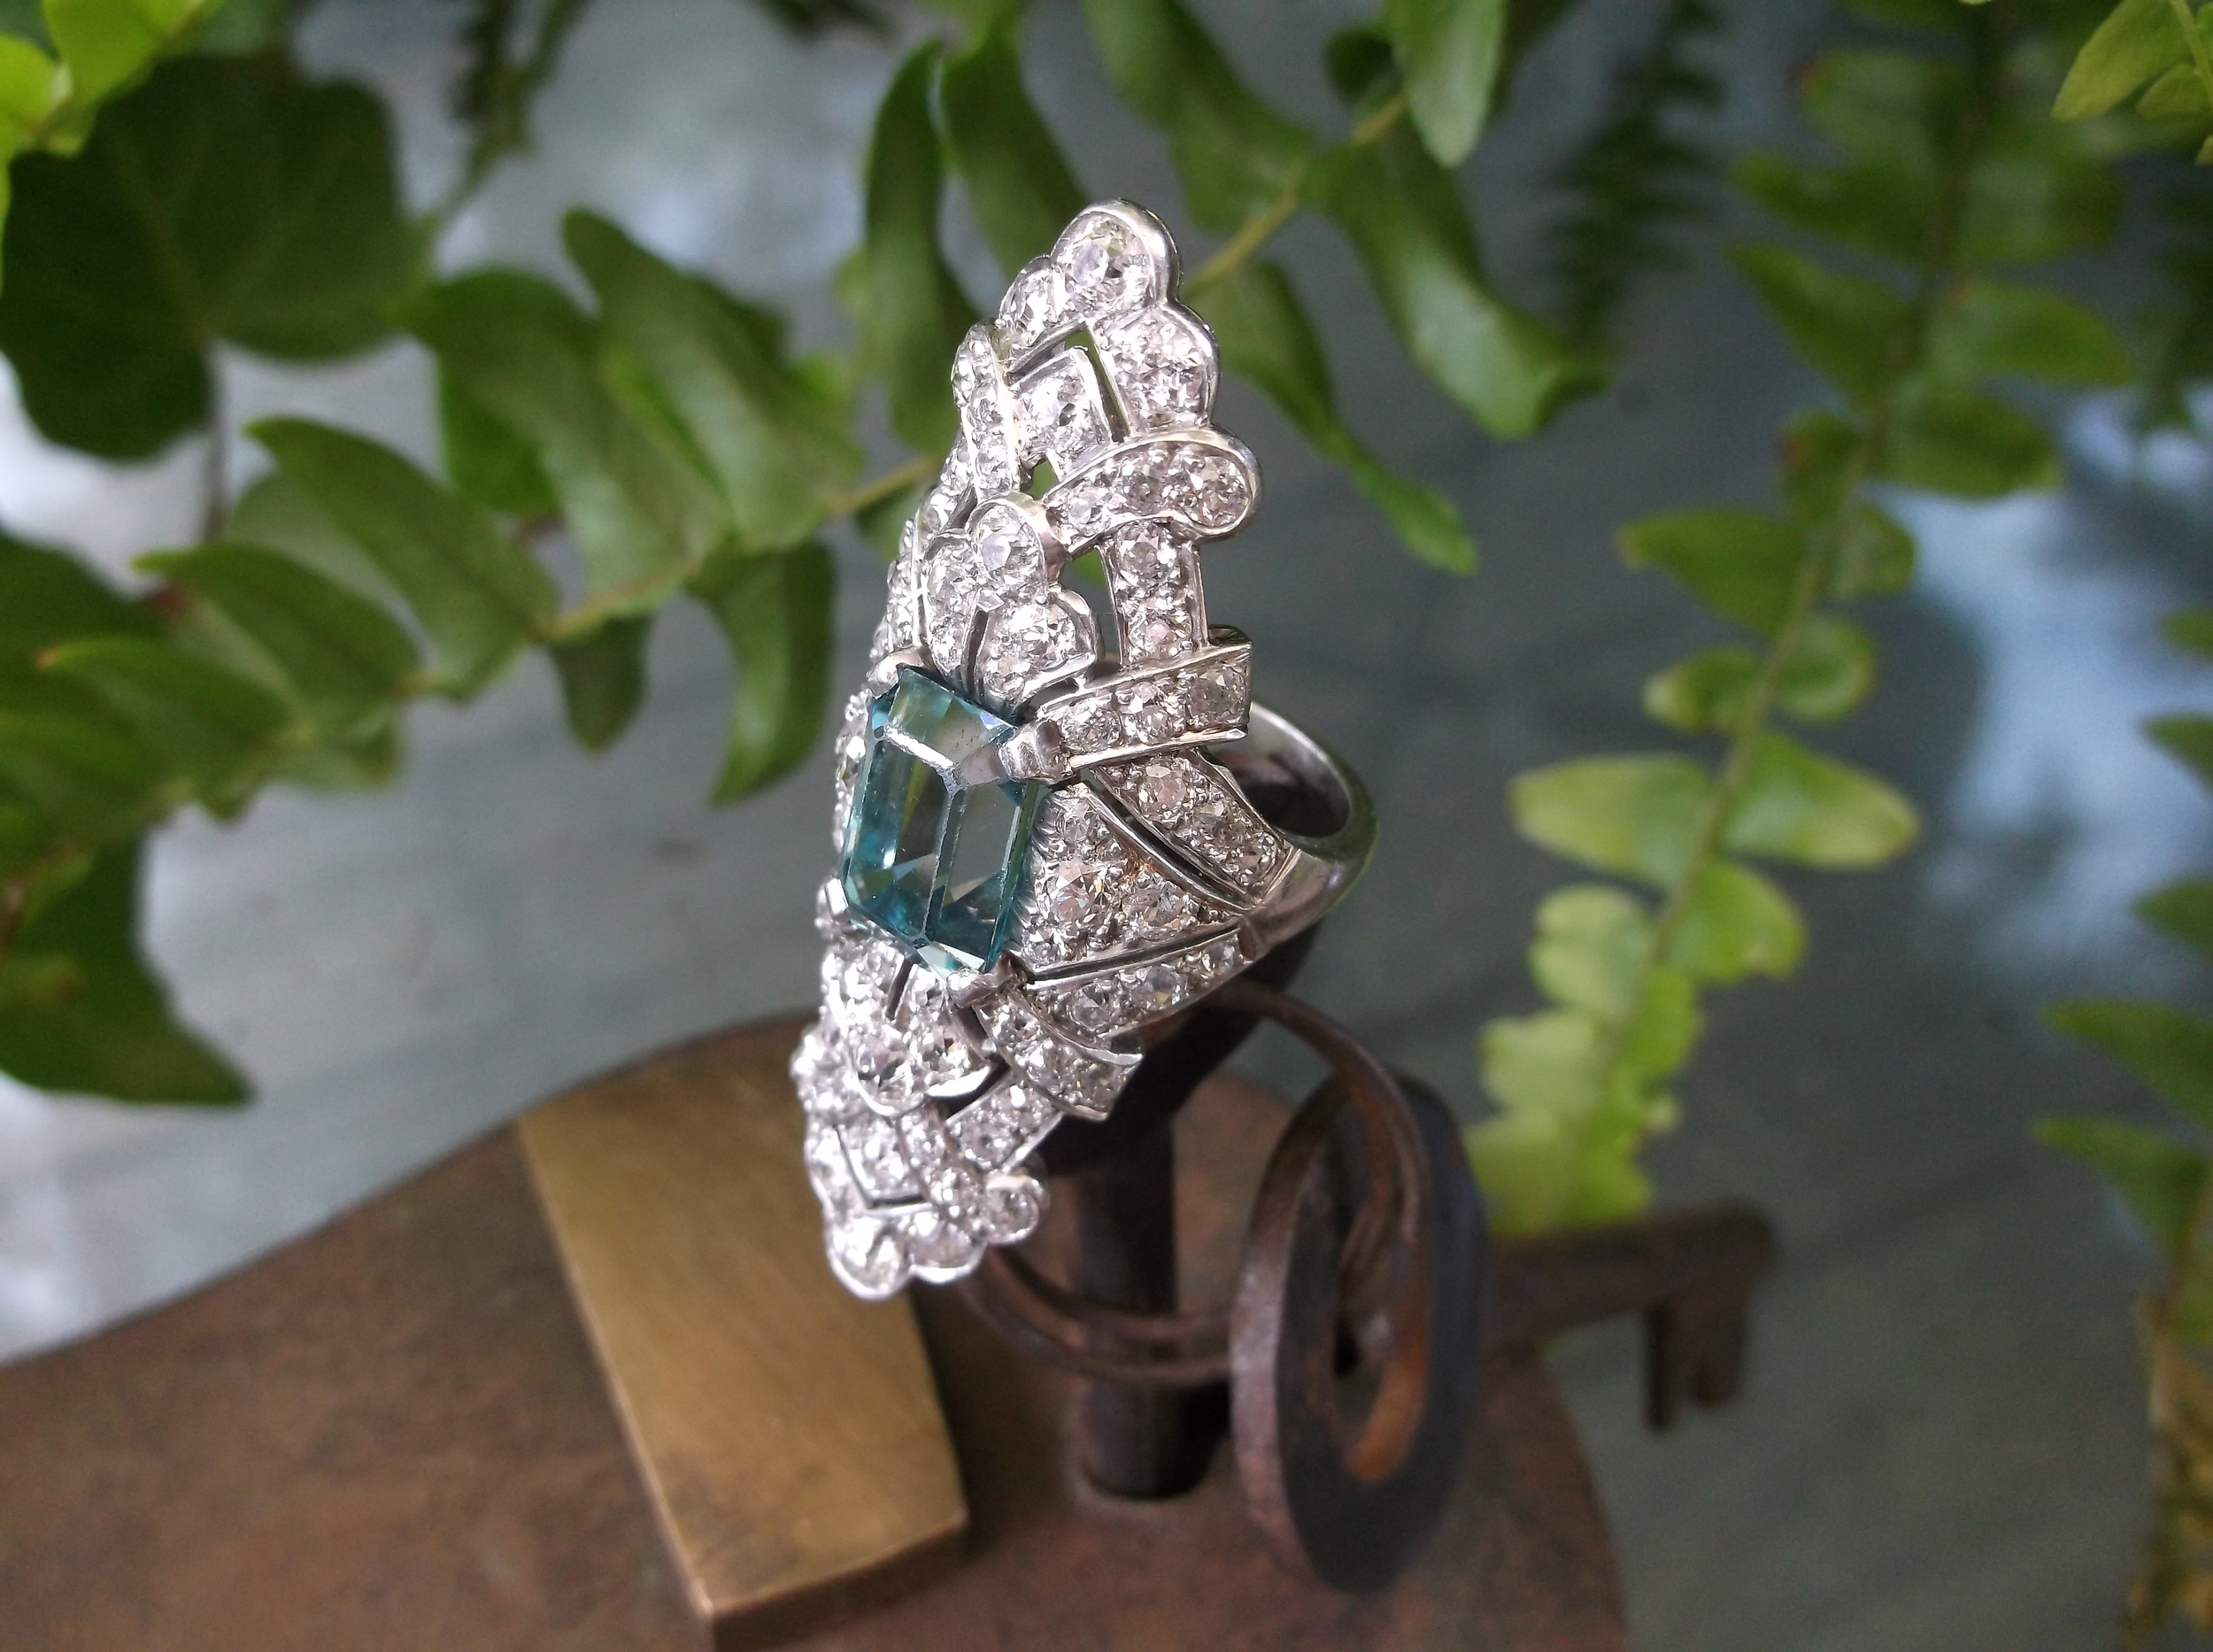 "SOLD - Awe inspiring 1920's 5.00 carat blue zircon elongated cocktail ring (approximately 2"" in length) with 2.75 carats total weight in diamonds set in platinum."